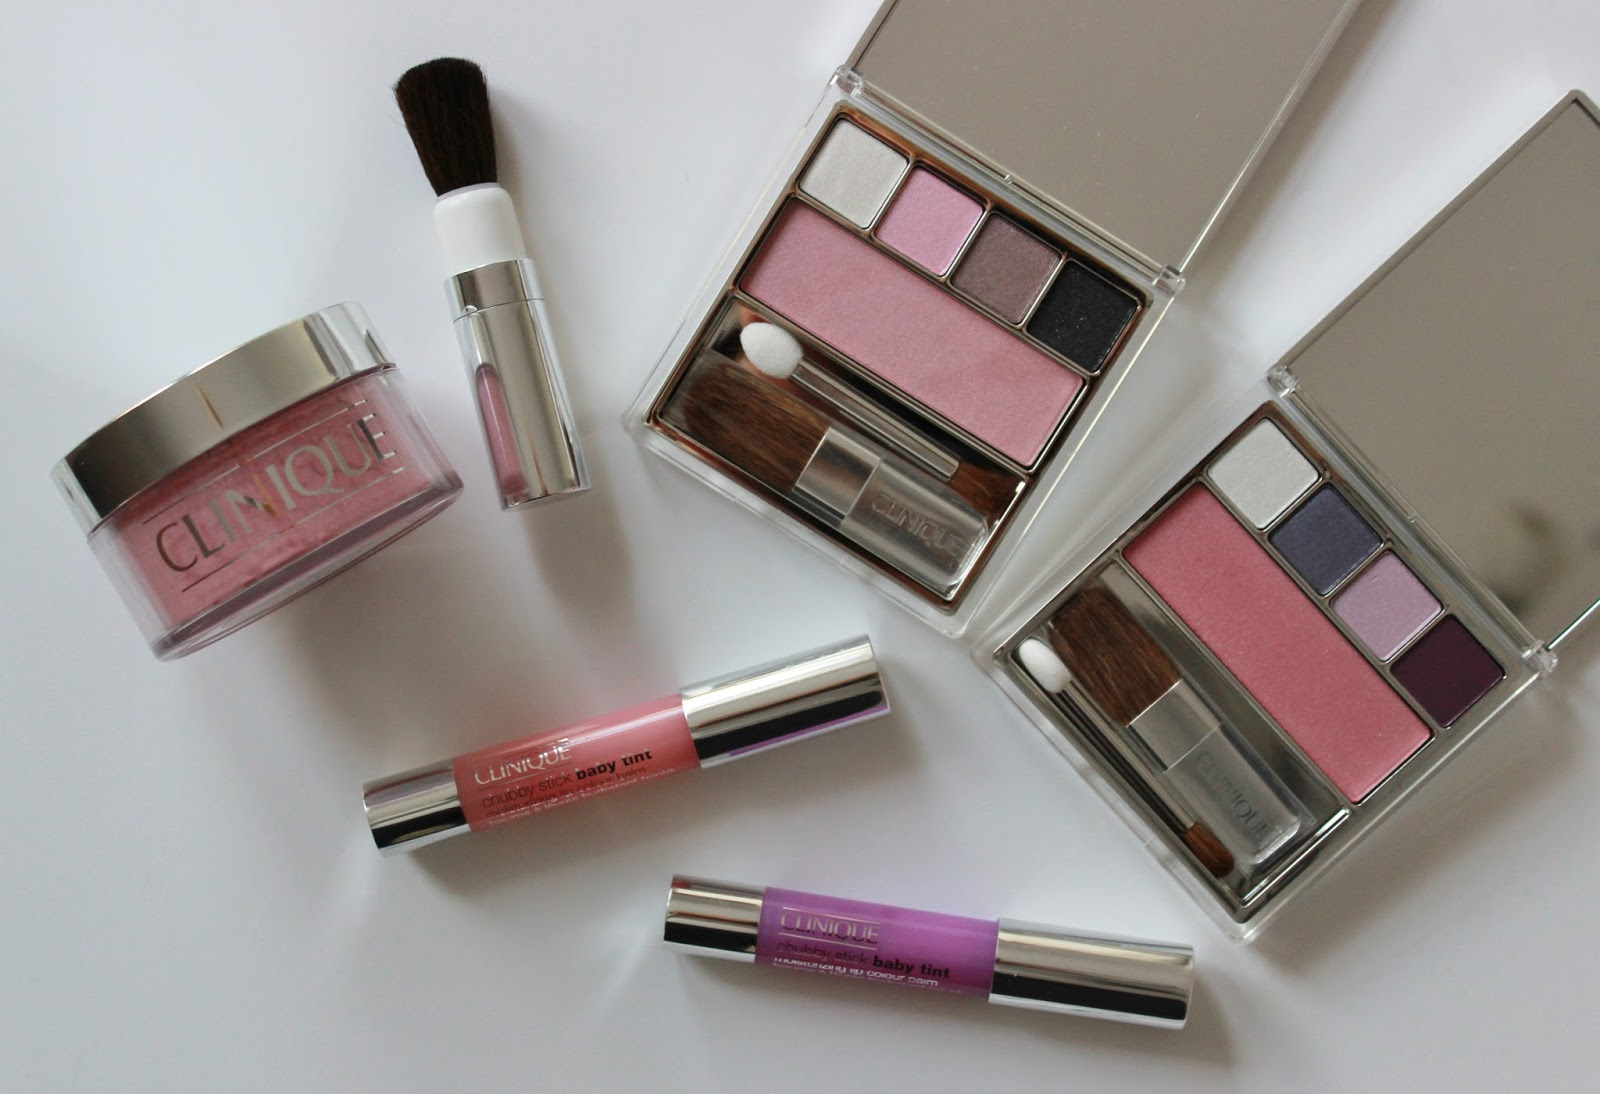 Clinique the nutcracker suite makeup collection